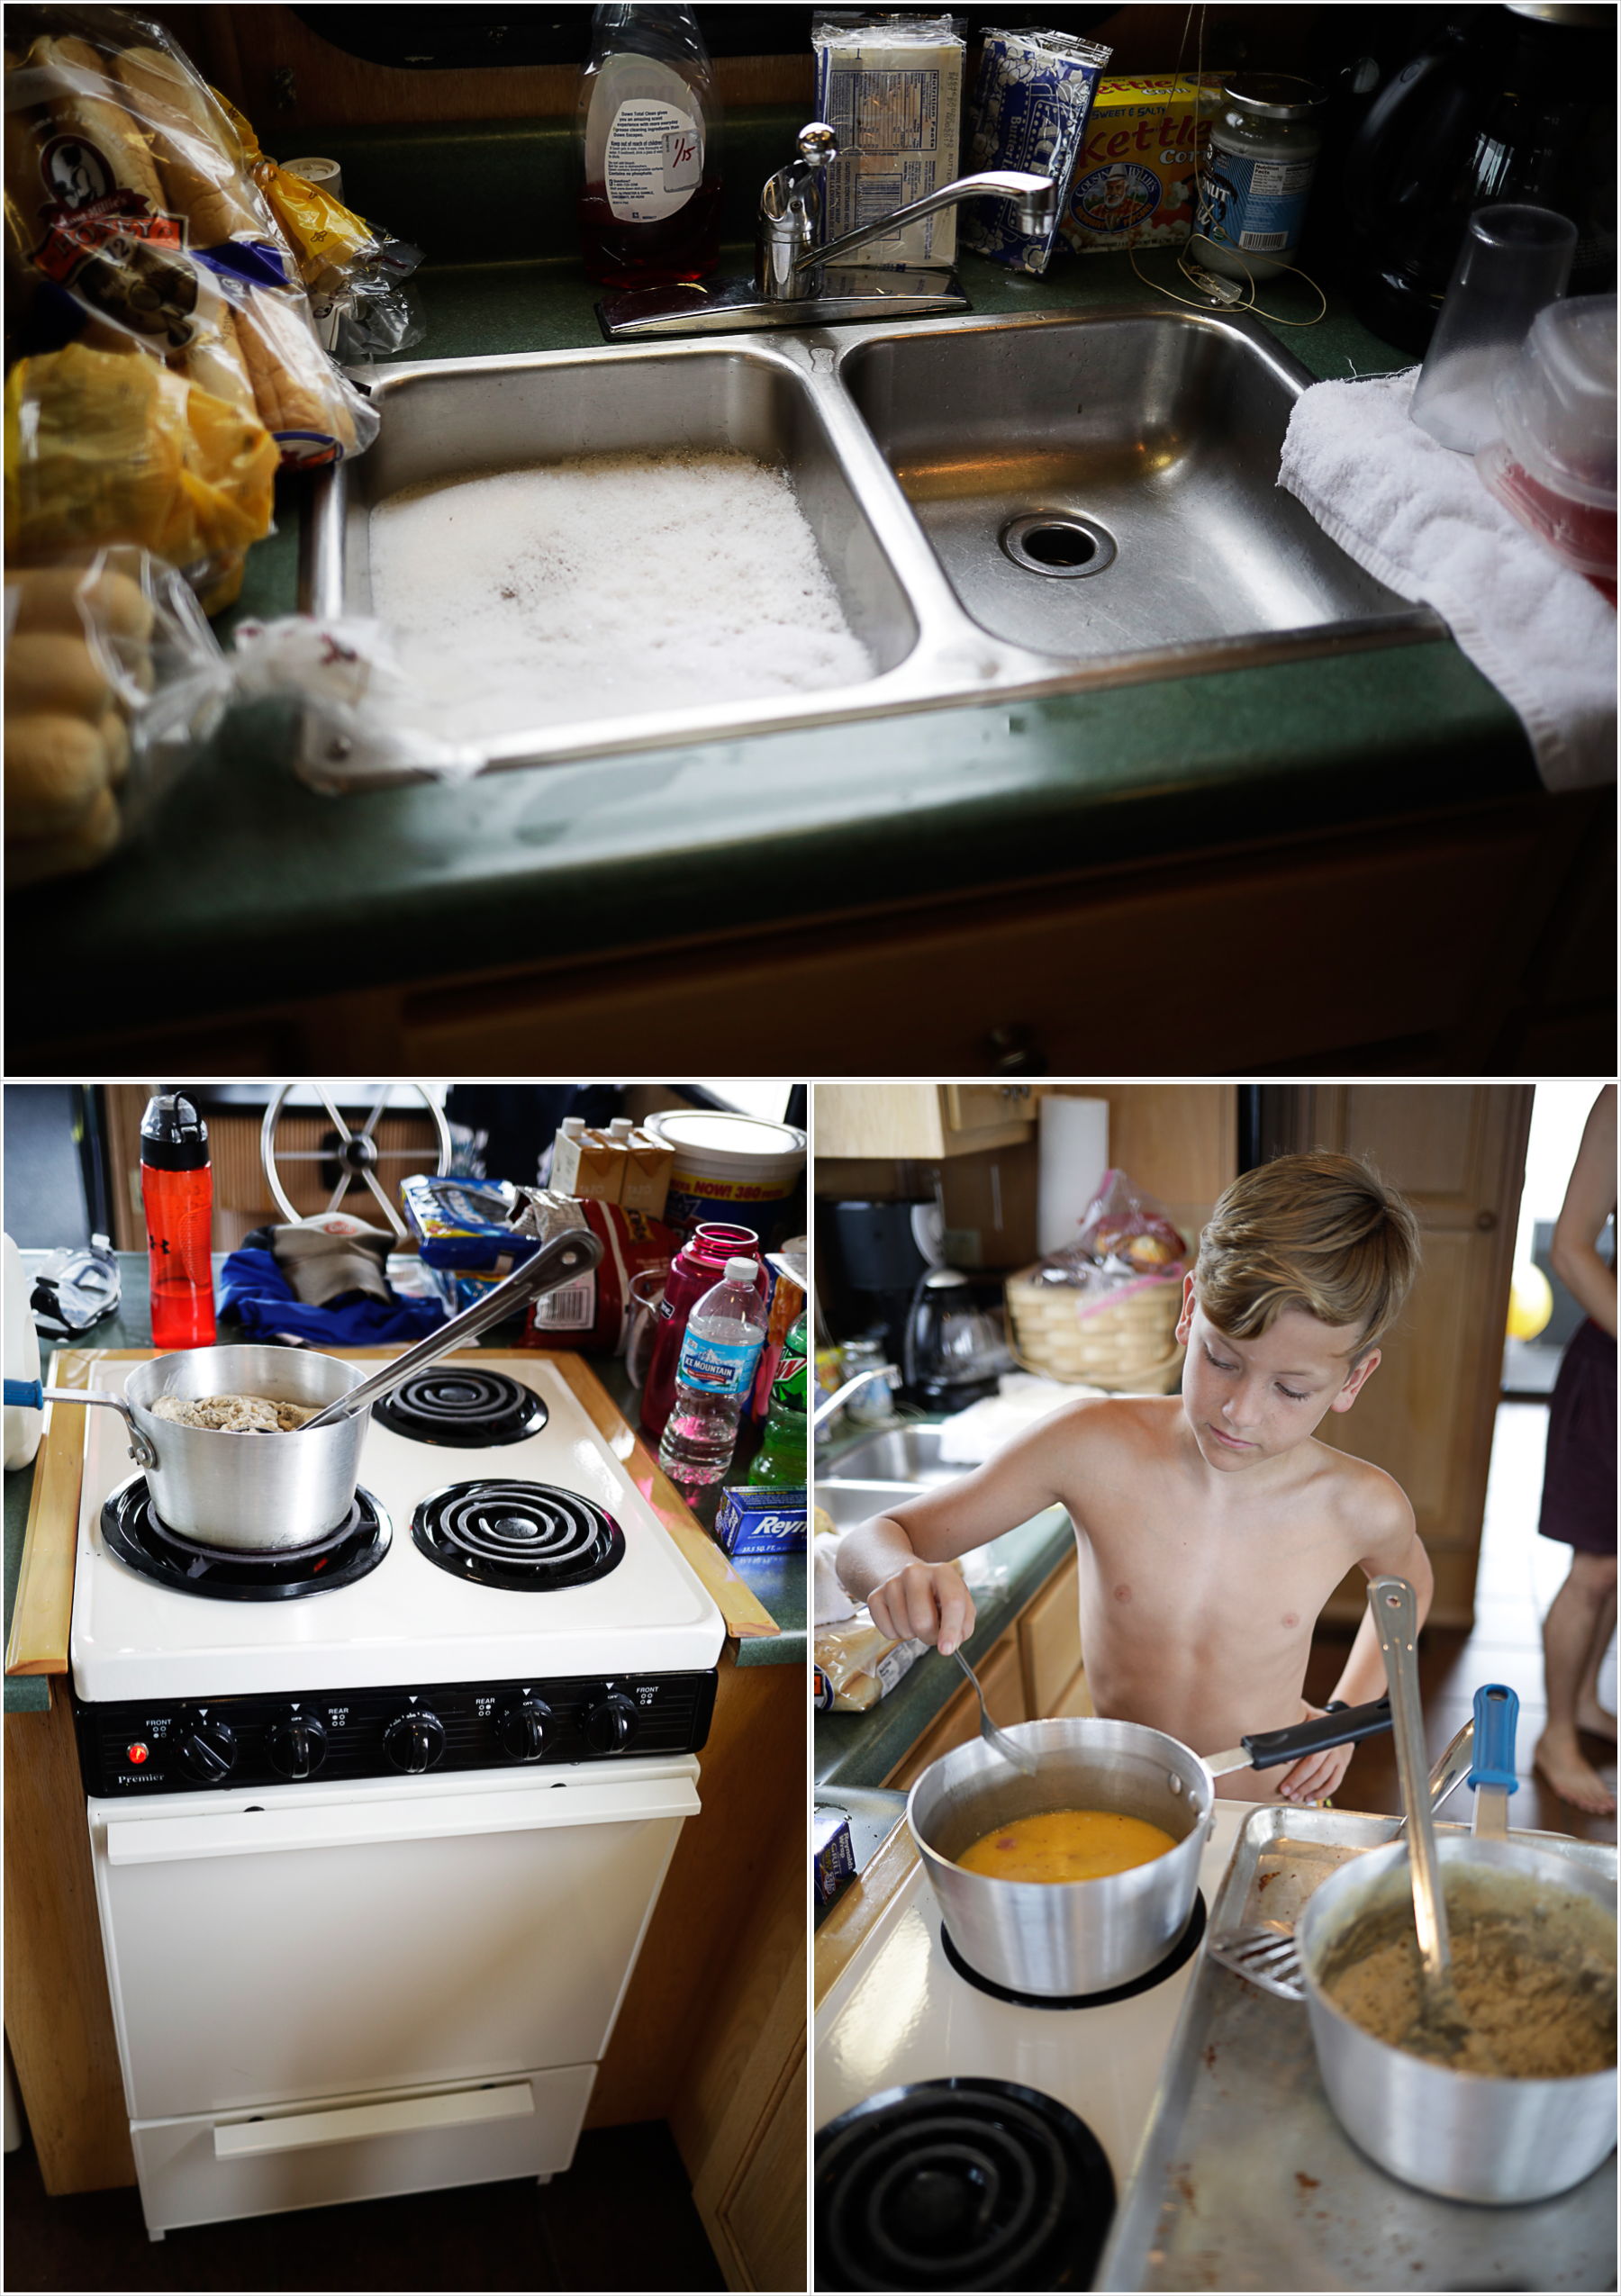 My youngest son cooking in the houseboat kitchen | Our Dale Hallow House Boat Adventure | J.B. TOLS